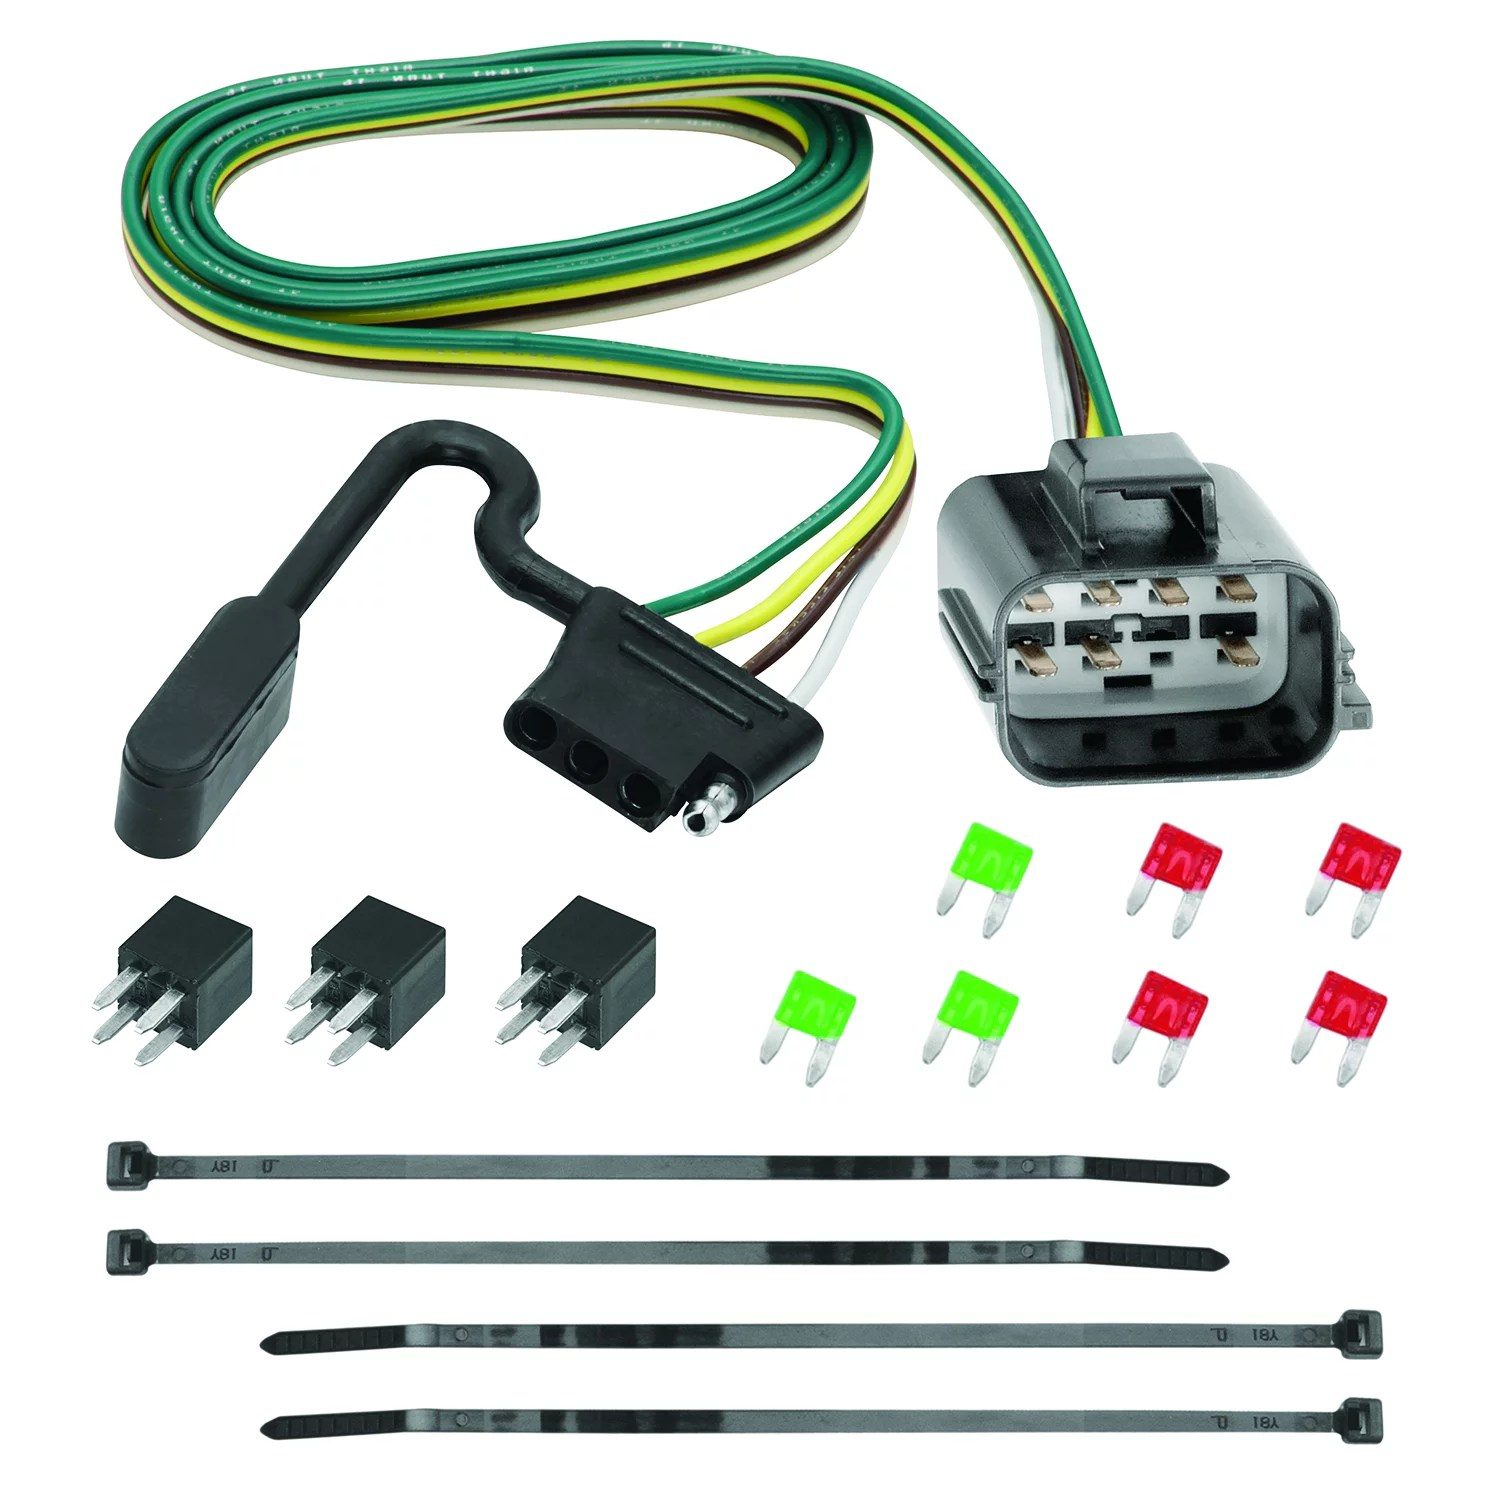 tekonsha 118270 trailer wiring connector 4 way flat replacement for oem wiring harness with circuit protected modulite hd module [ 1500 x 1500 Pixel ]